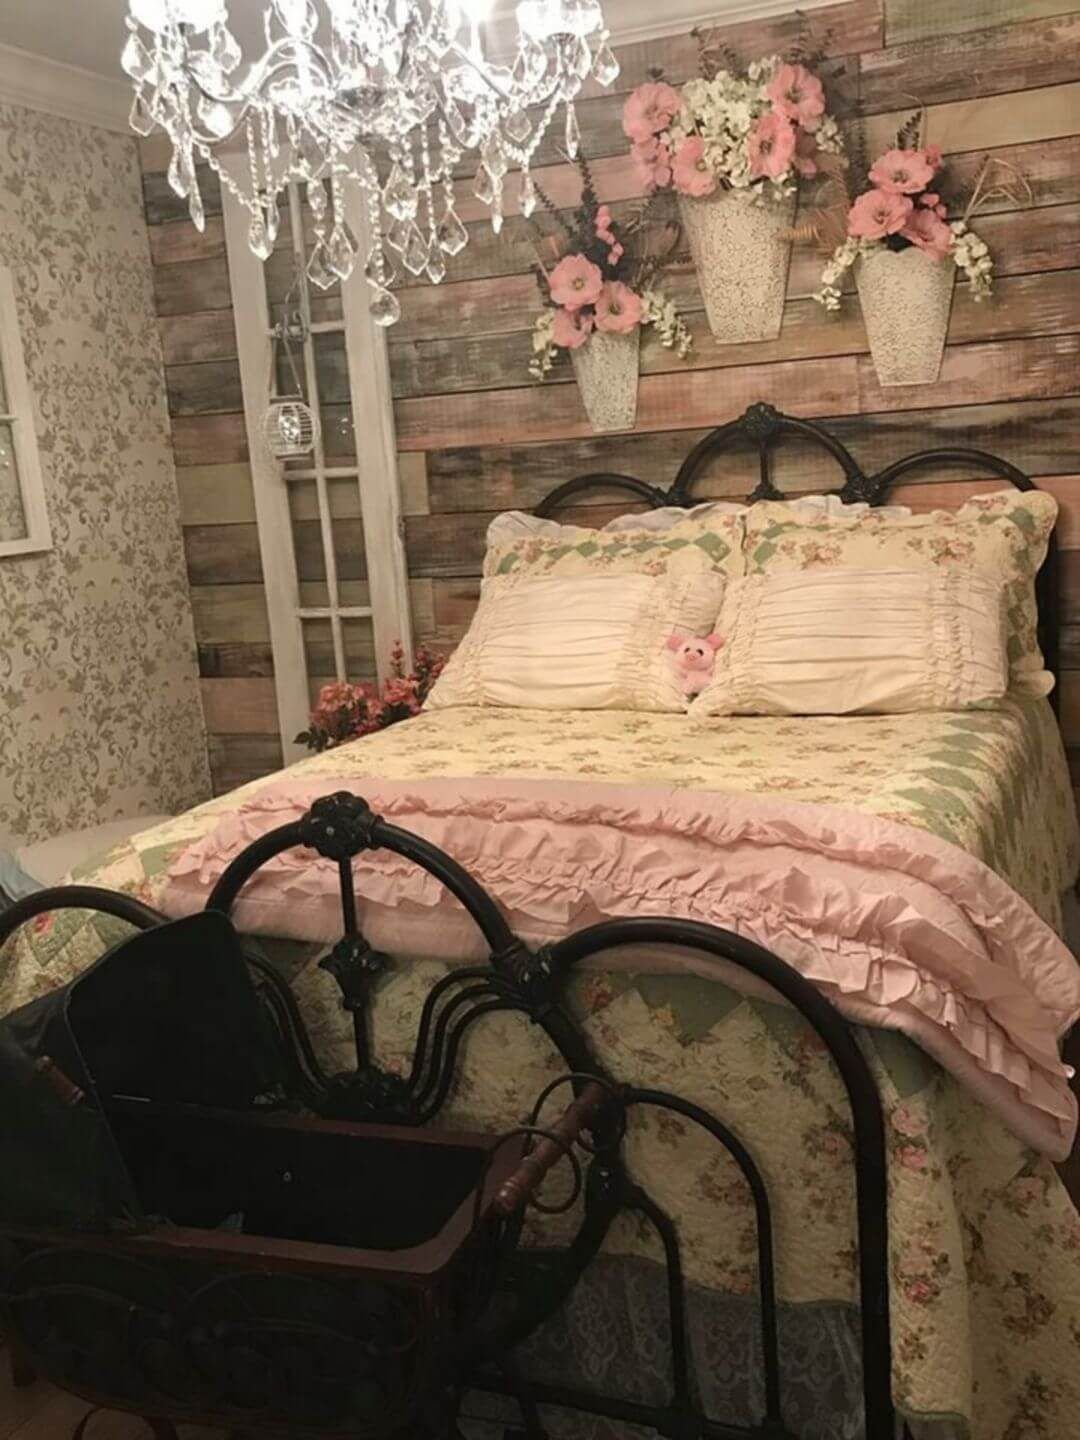 25 Fashionable Shabby Chic Bedroom (All Are Stylish!) - Q10